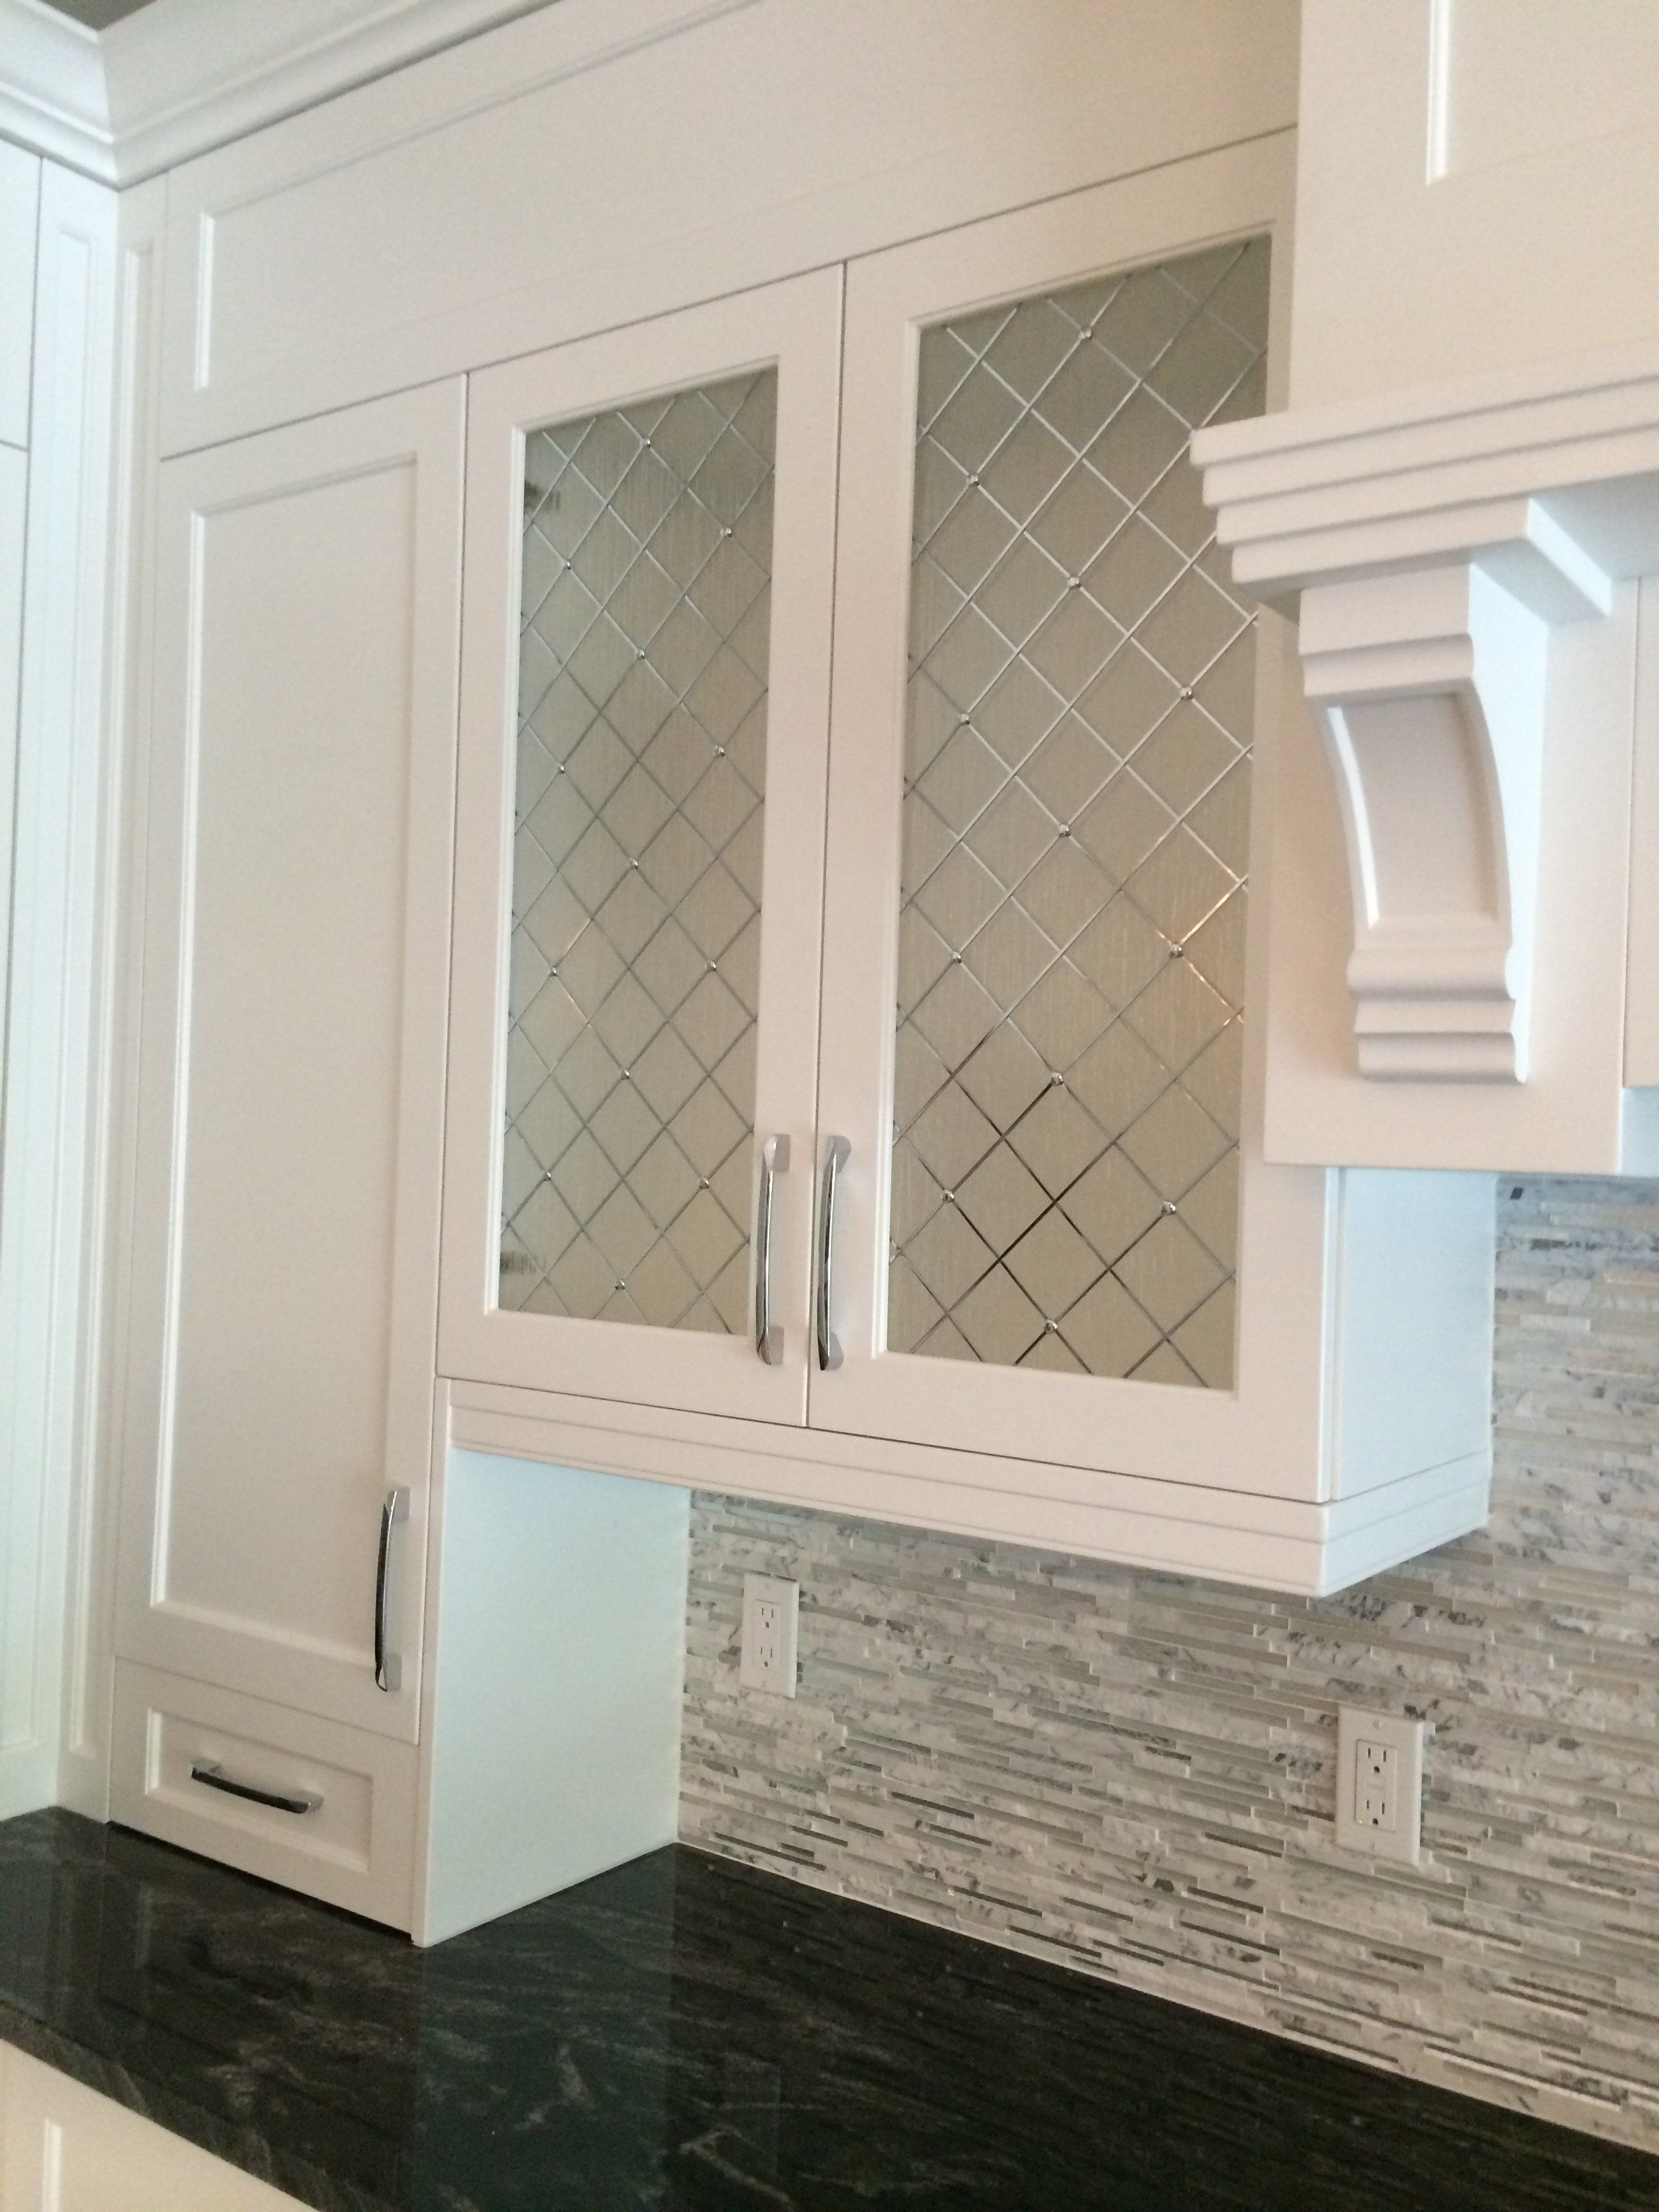 Ideas On Installing The Best Frosted Glass Cabinets In Your Kitchen Decor Around The World In 2020 Glass Kitchen Cabinet Doors Glass Kitchen Cabinets Glass Cabinet Doors